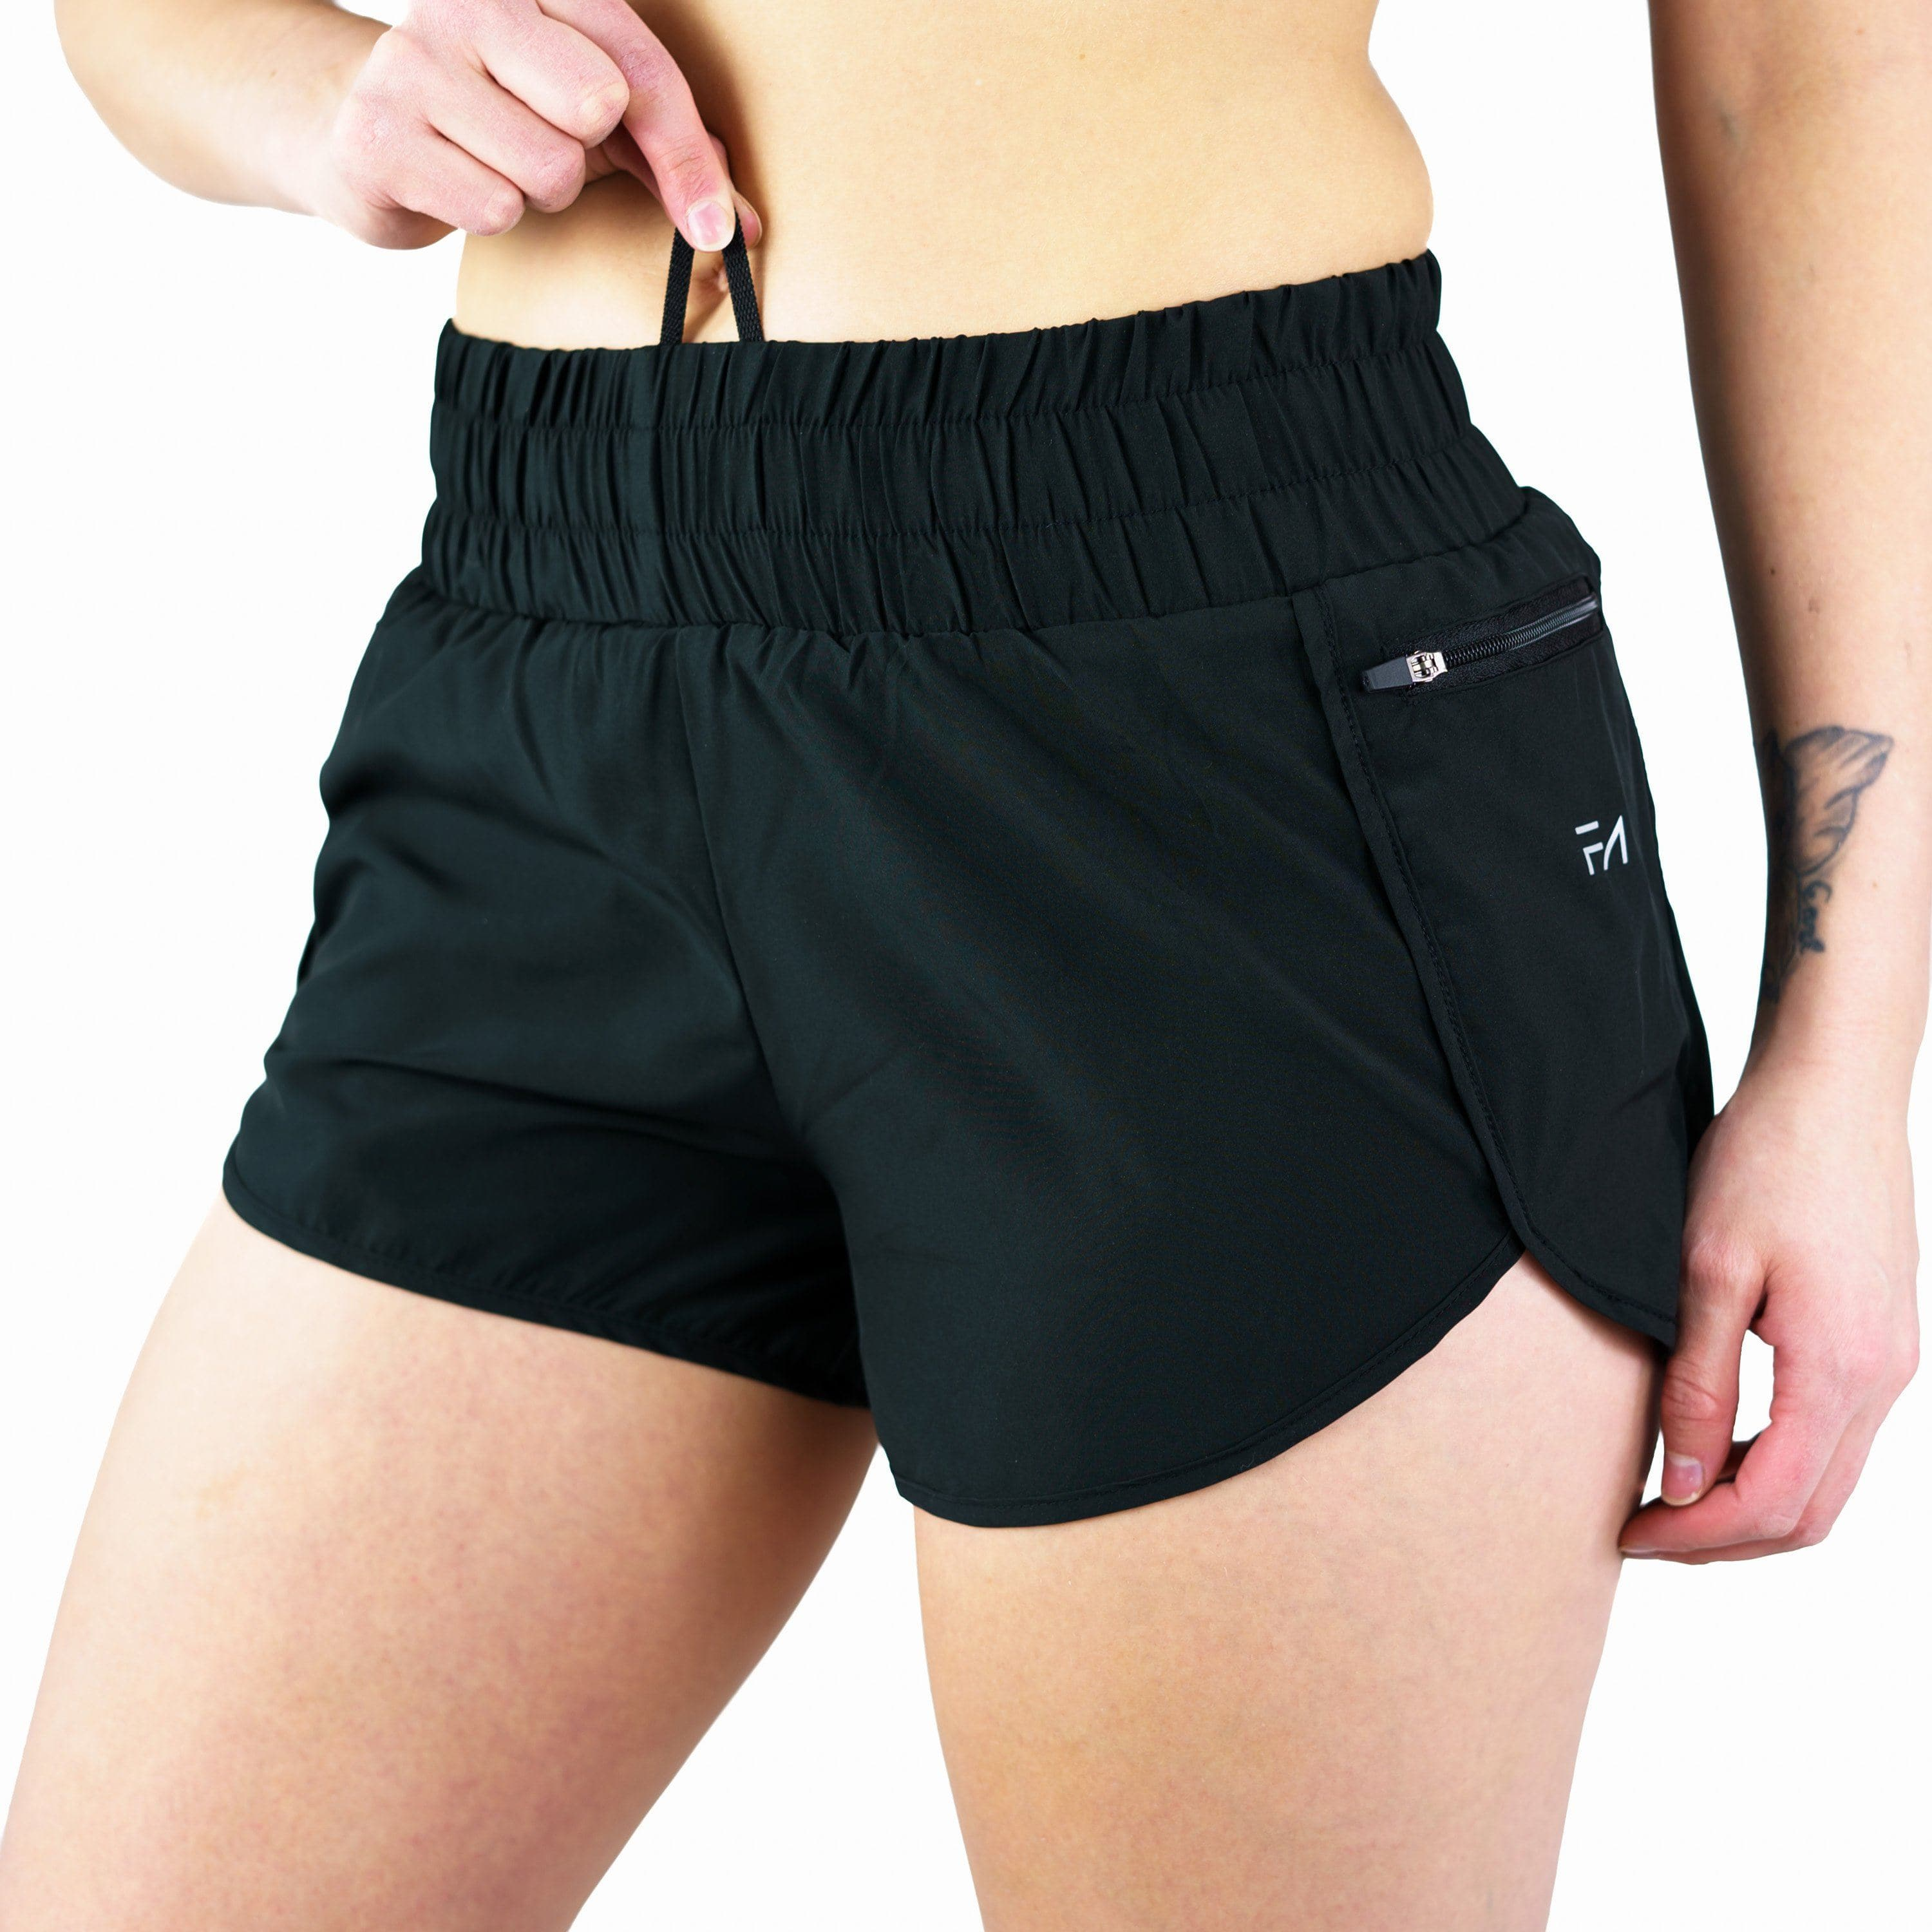 Aspect Shorts Black 2.5""